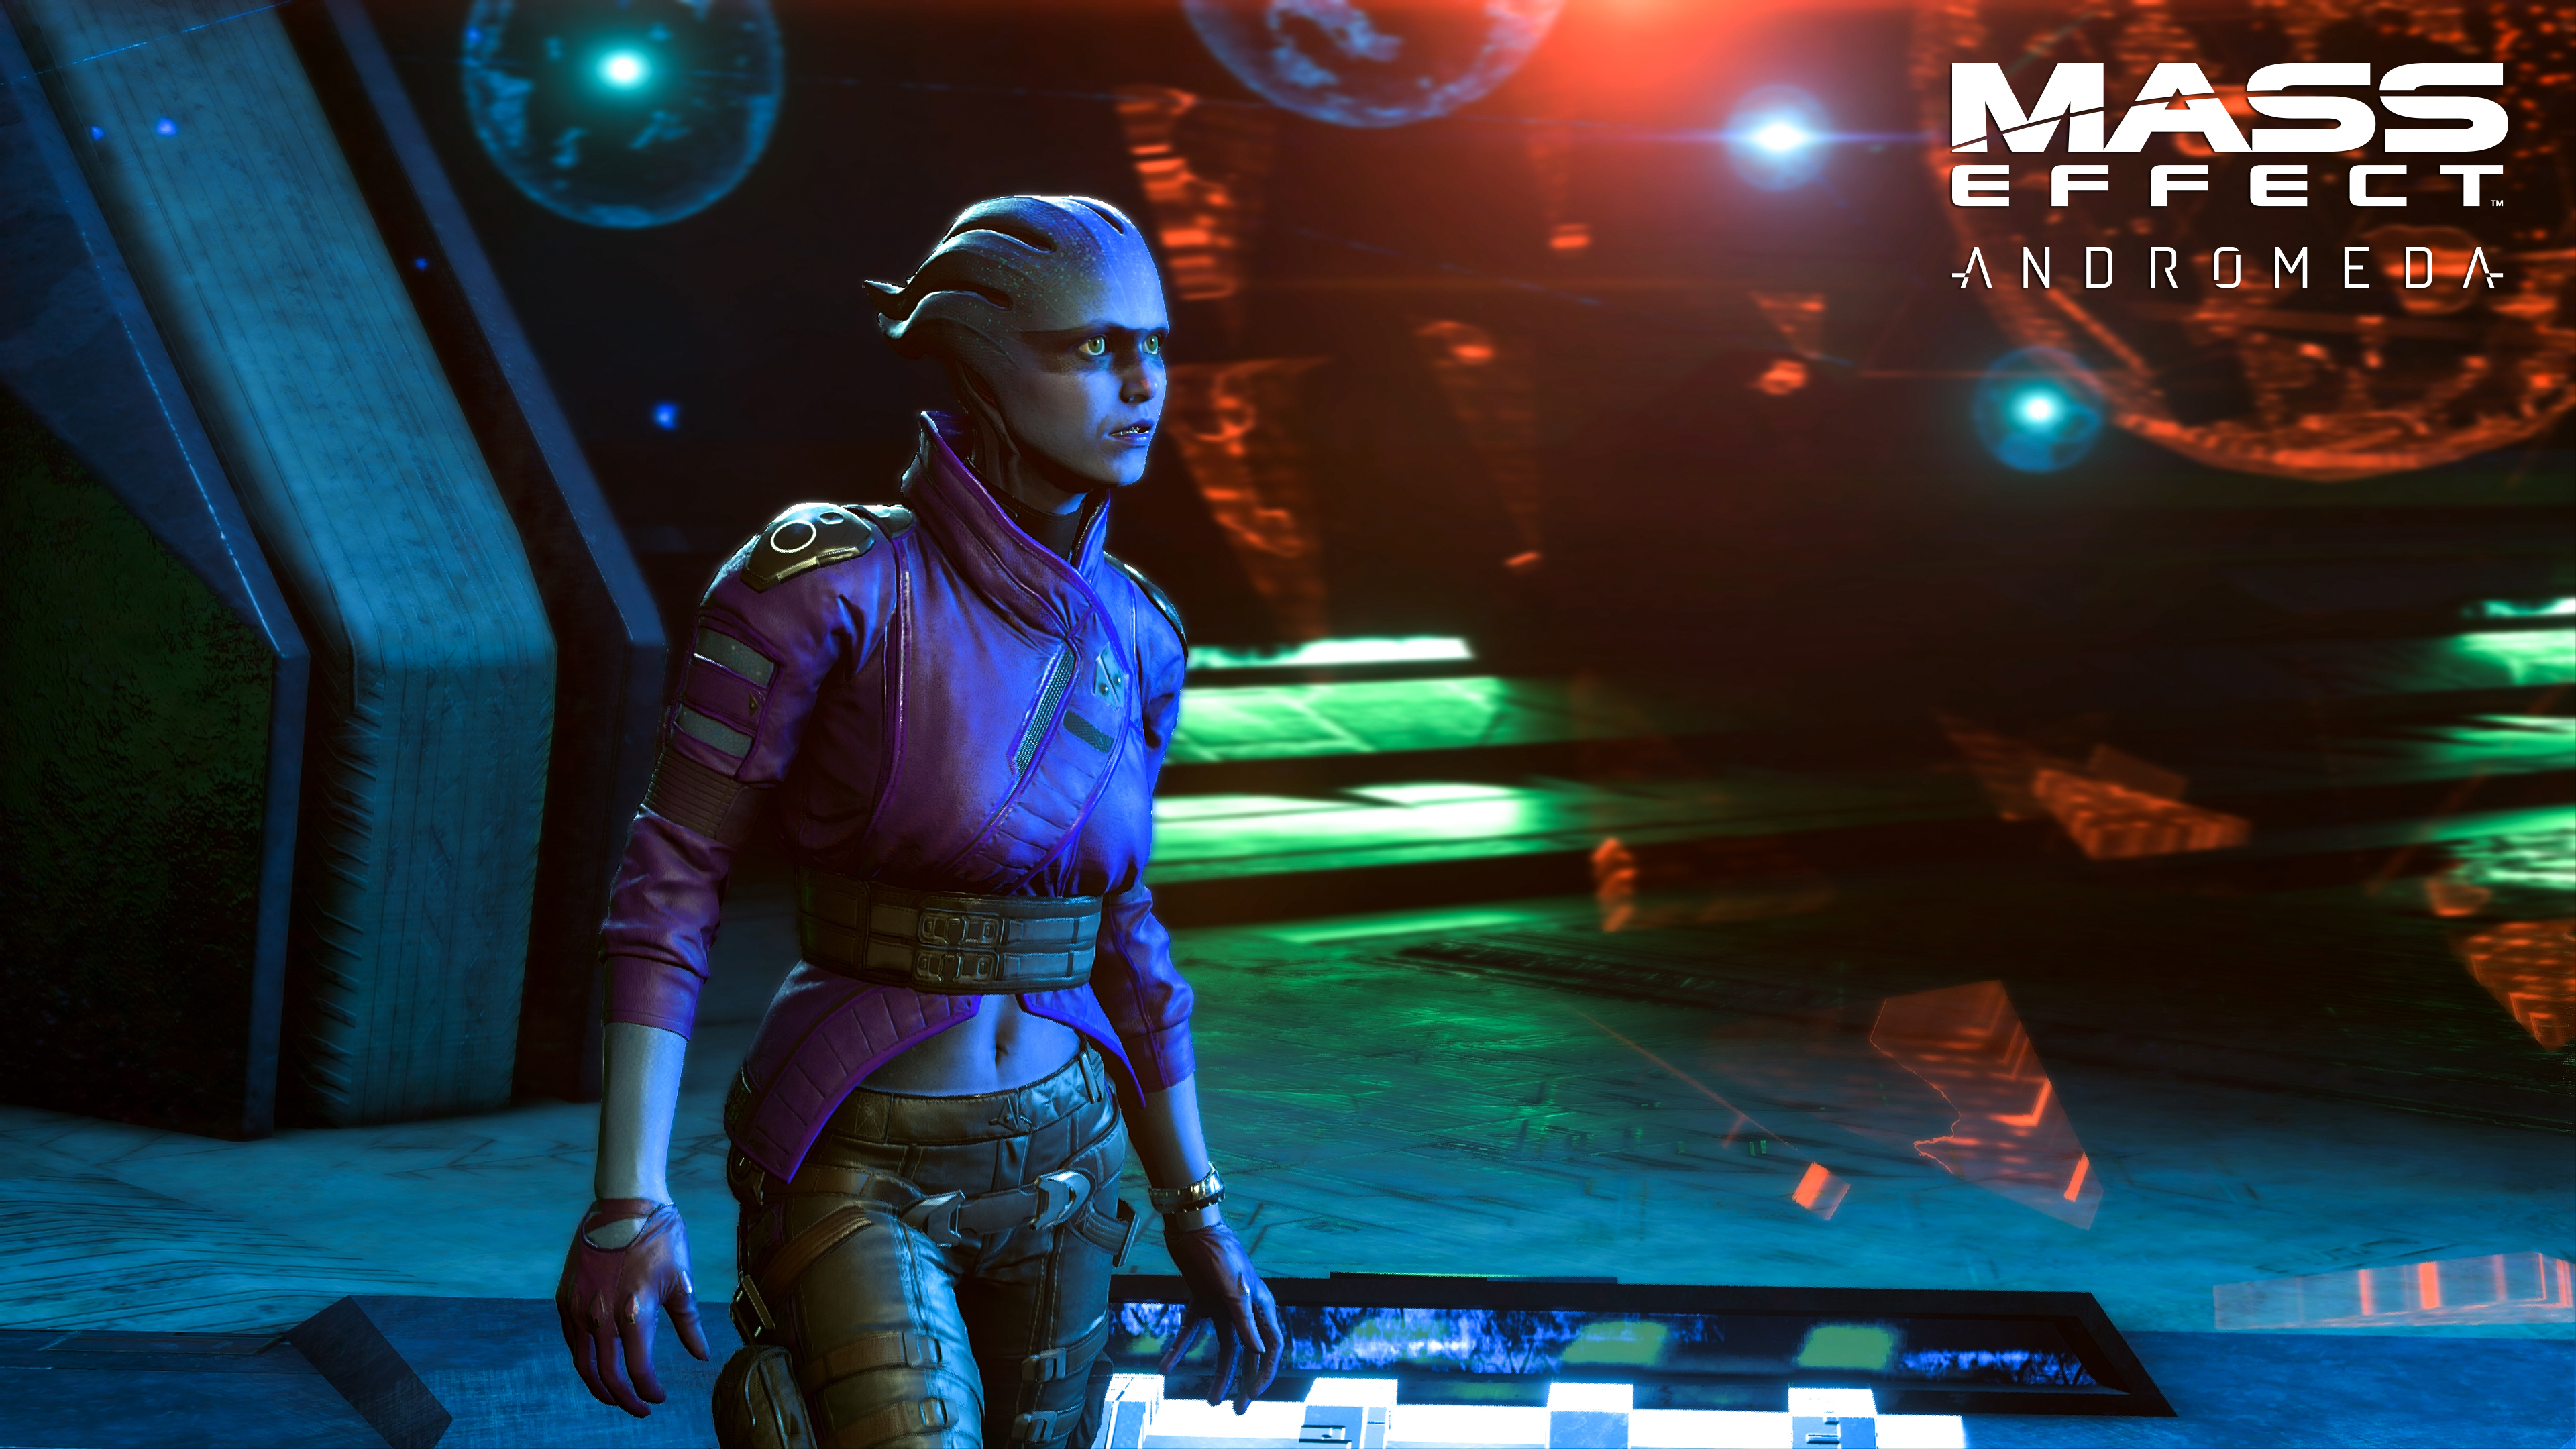 Mass Effect Andromeda profile guides: How to unlock all profiles